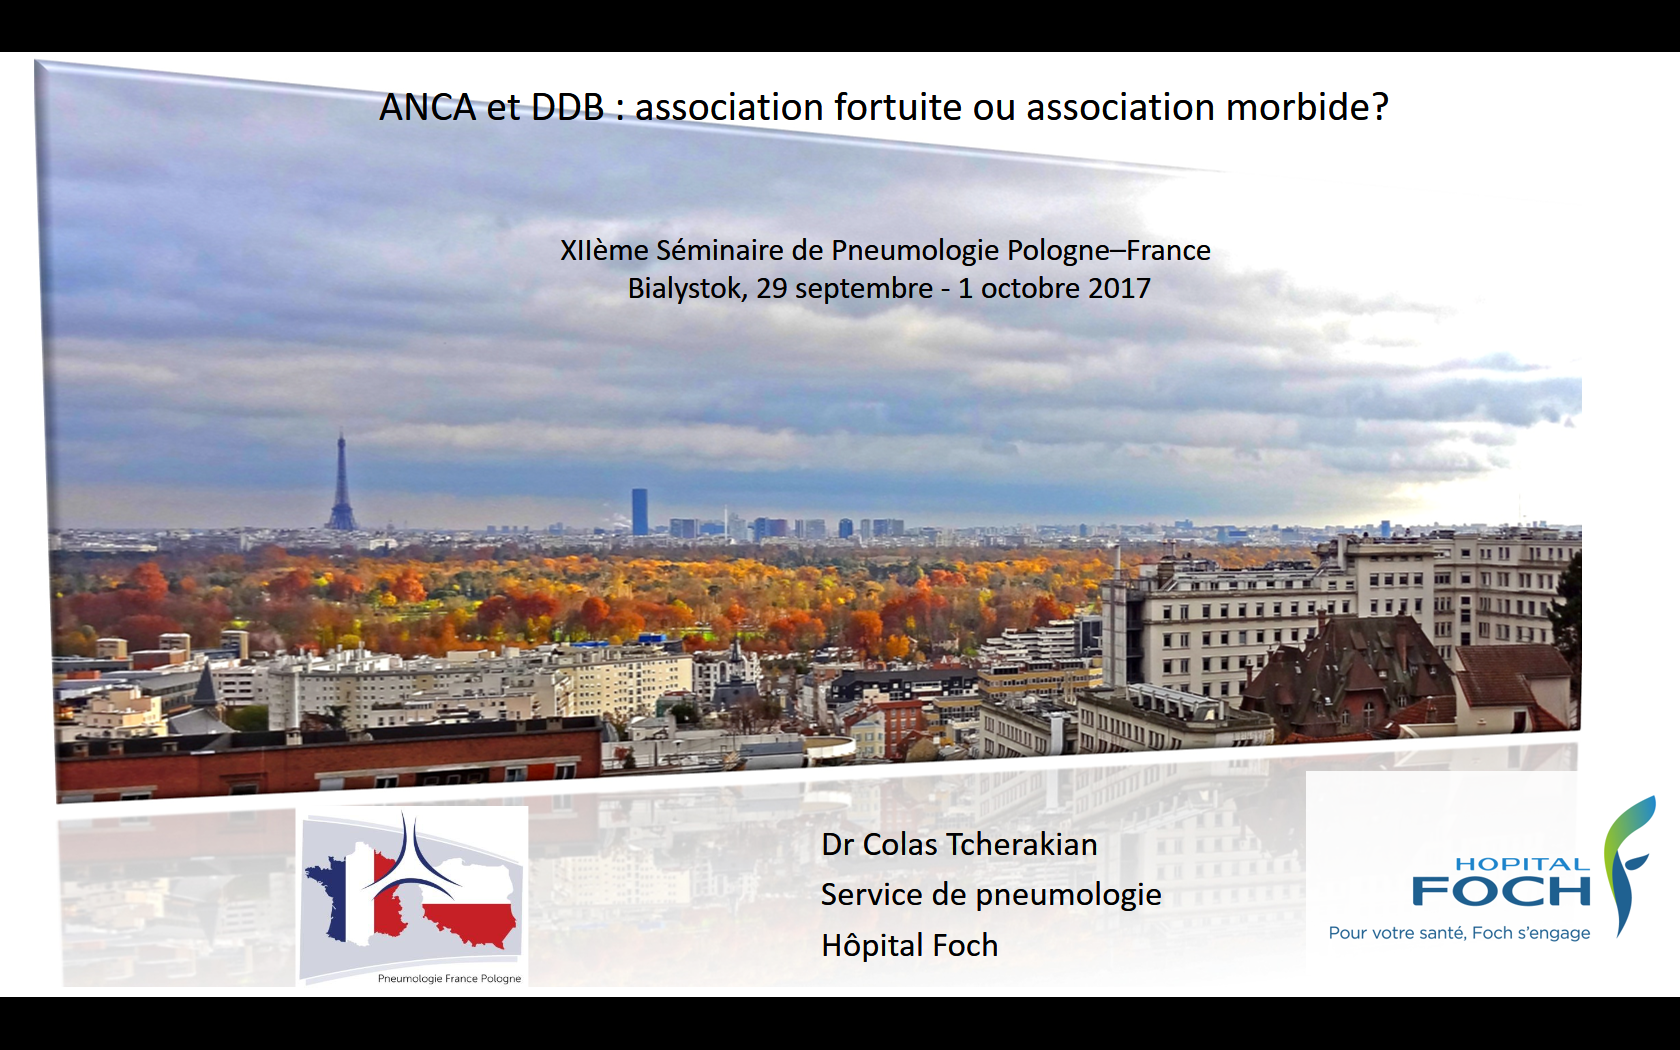 ANCA et DDB  association fortuite ou association morbide. Colas Tcherakian